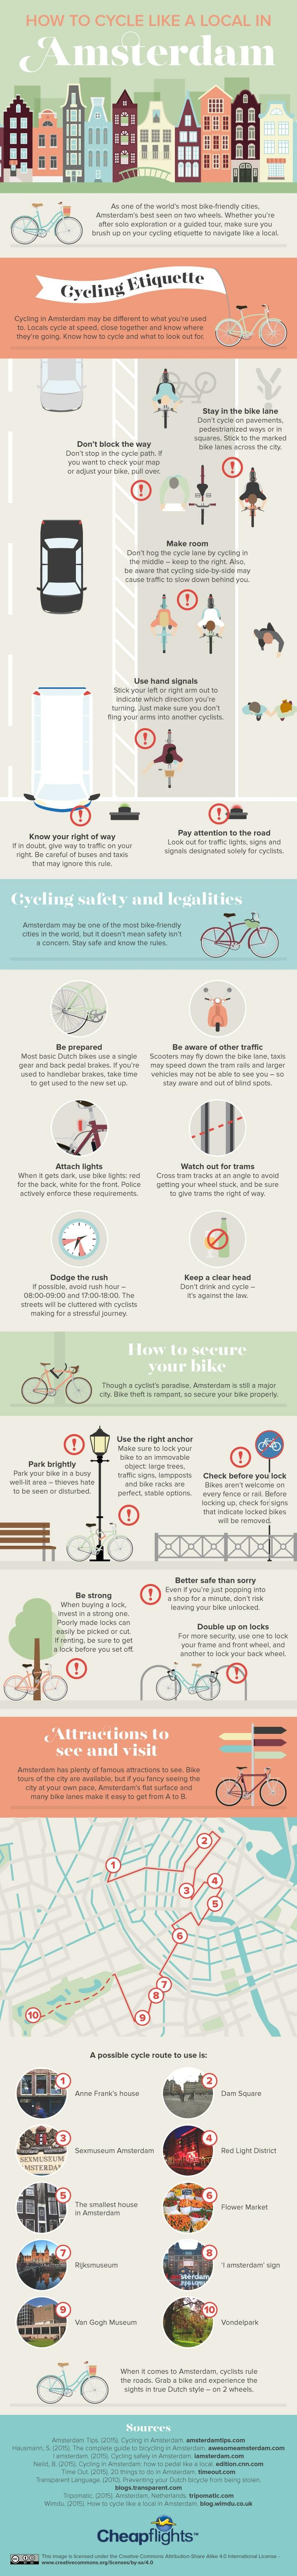 a-cycling-guide-to-amsterdam